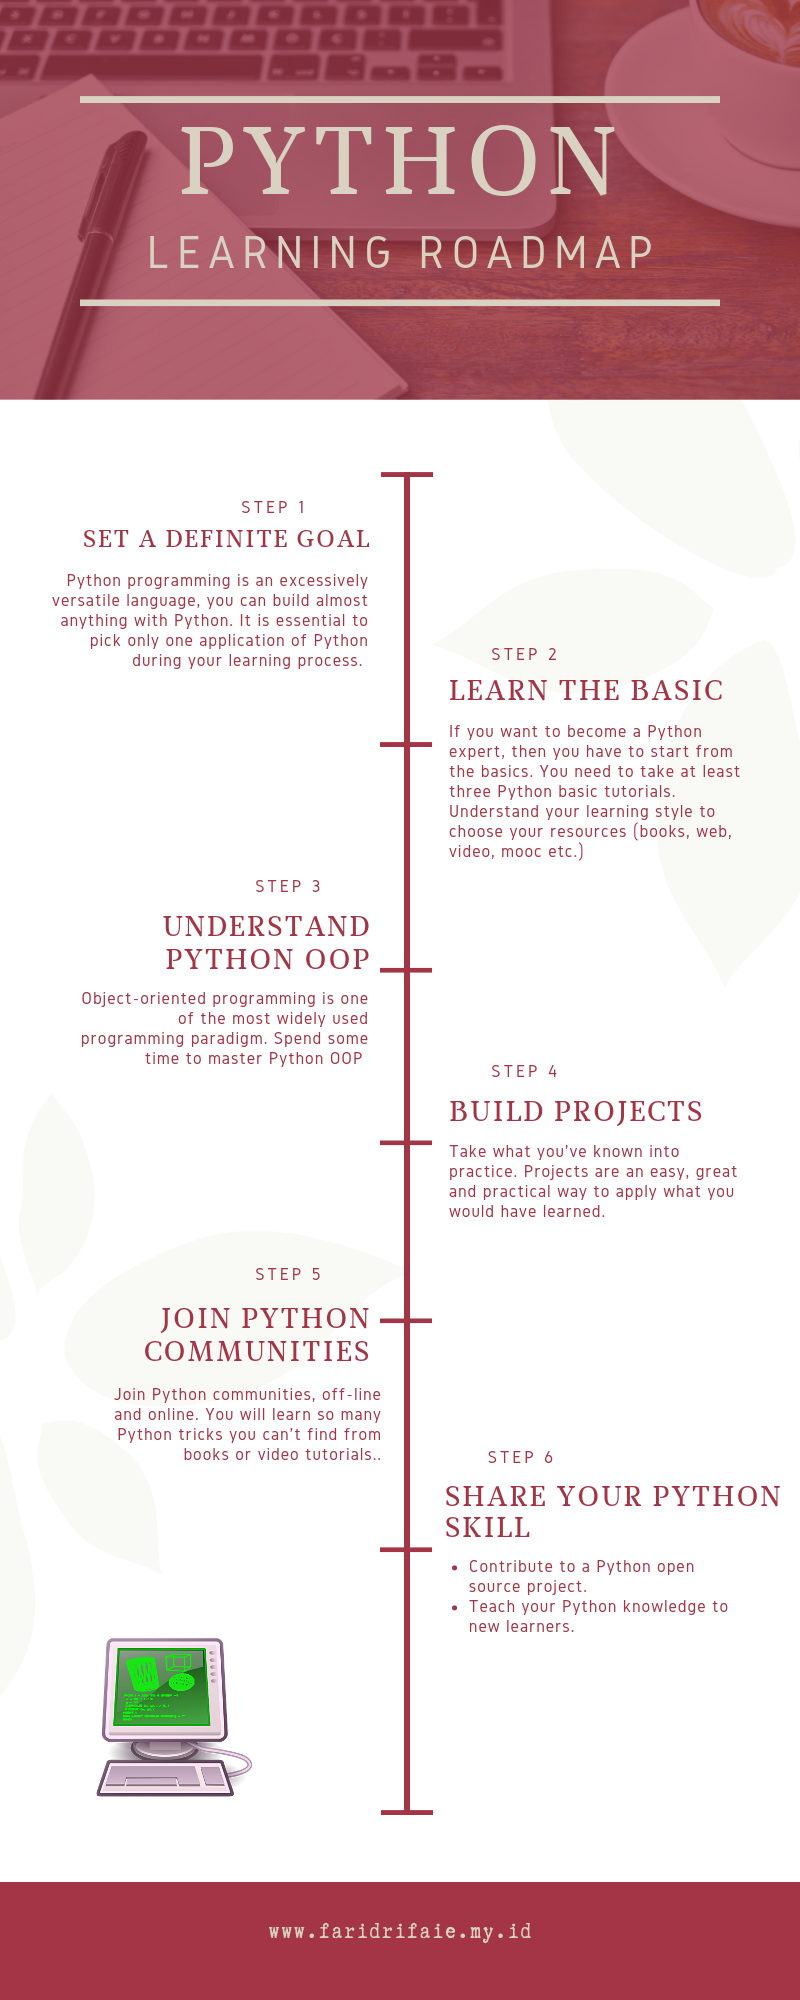 Python Learning Roadmap How To Avoid Mistakes I Made Programingsoftware Learning Programming Ha Learn Computer Coding Learn Programming Programming Tutorial